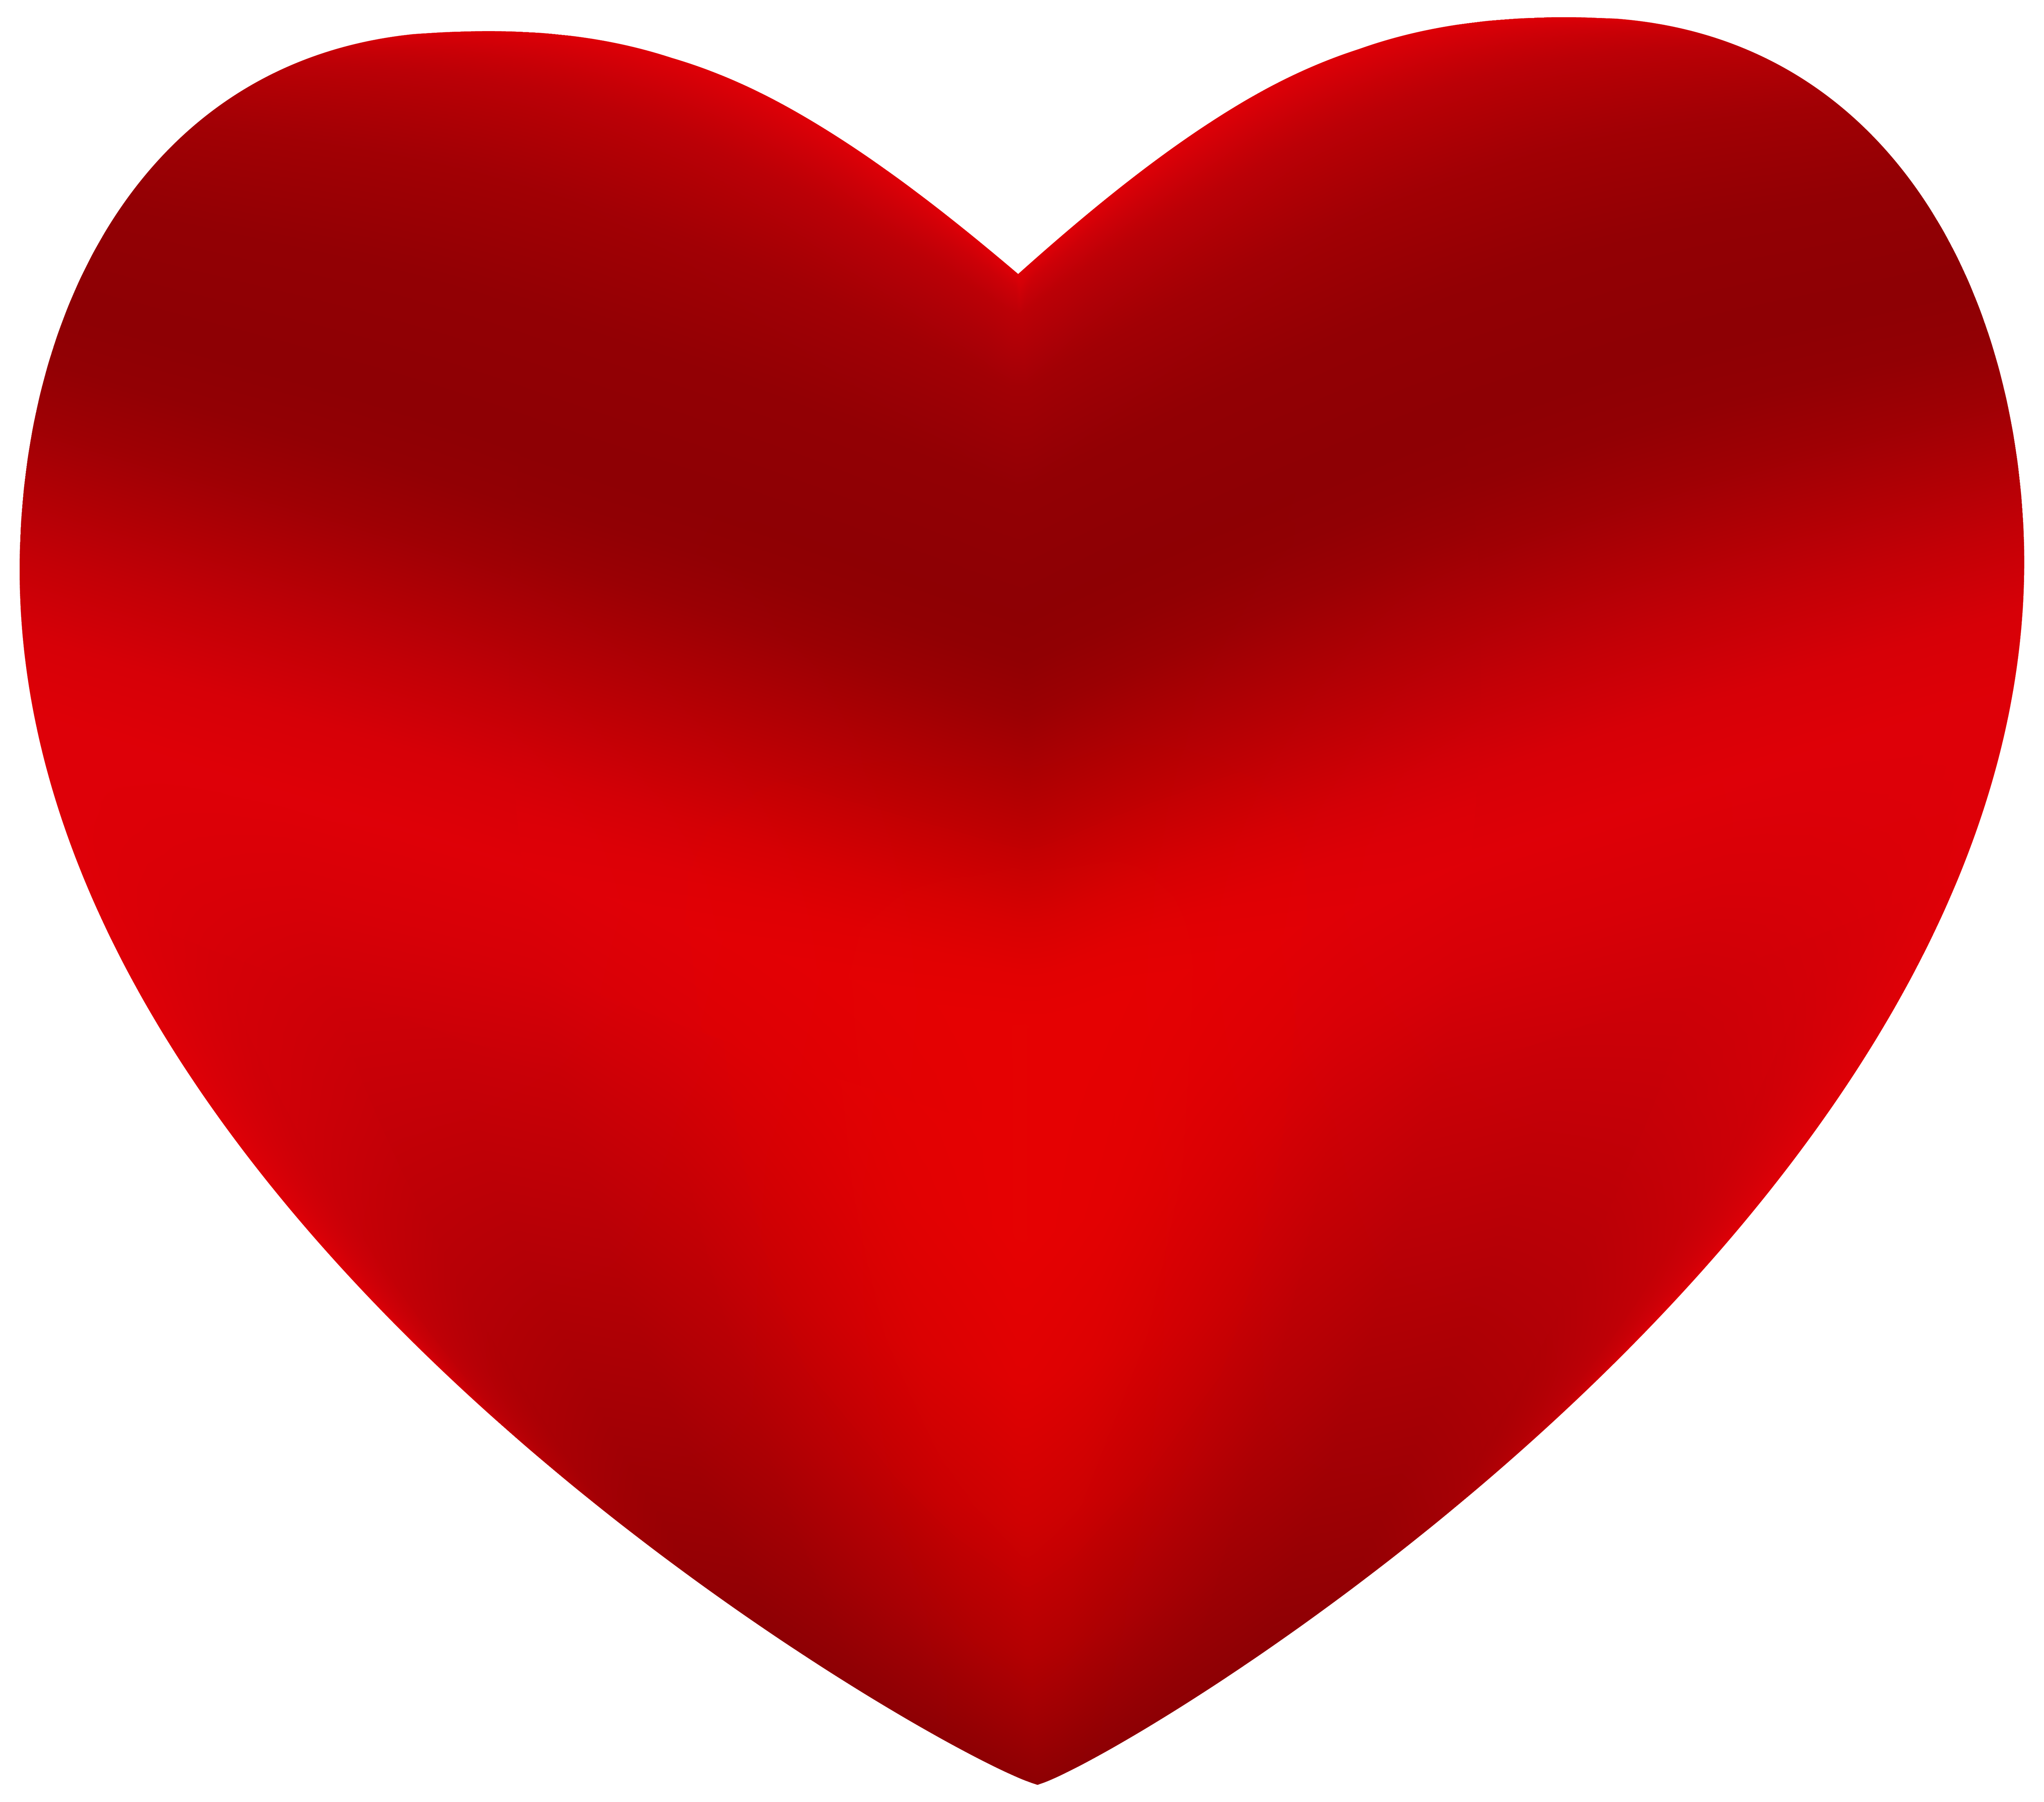 Red clipart heart picture free download Beautiful Red Heart PNG Clipart - Best WEB Clipart picture free download